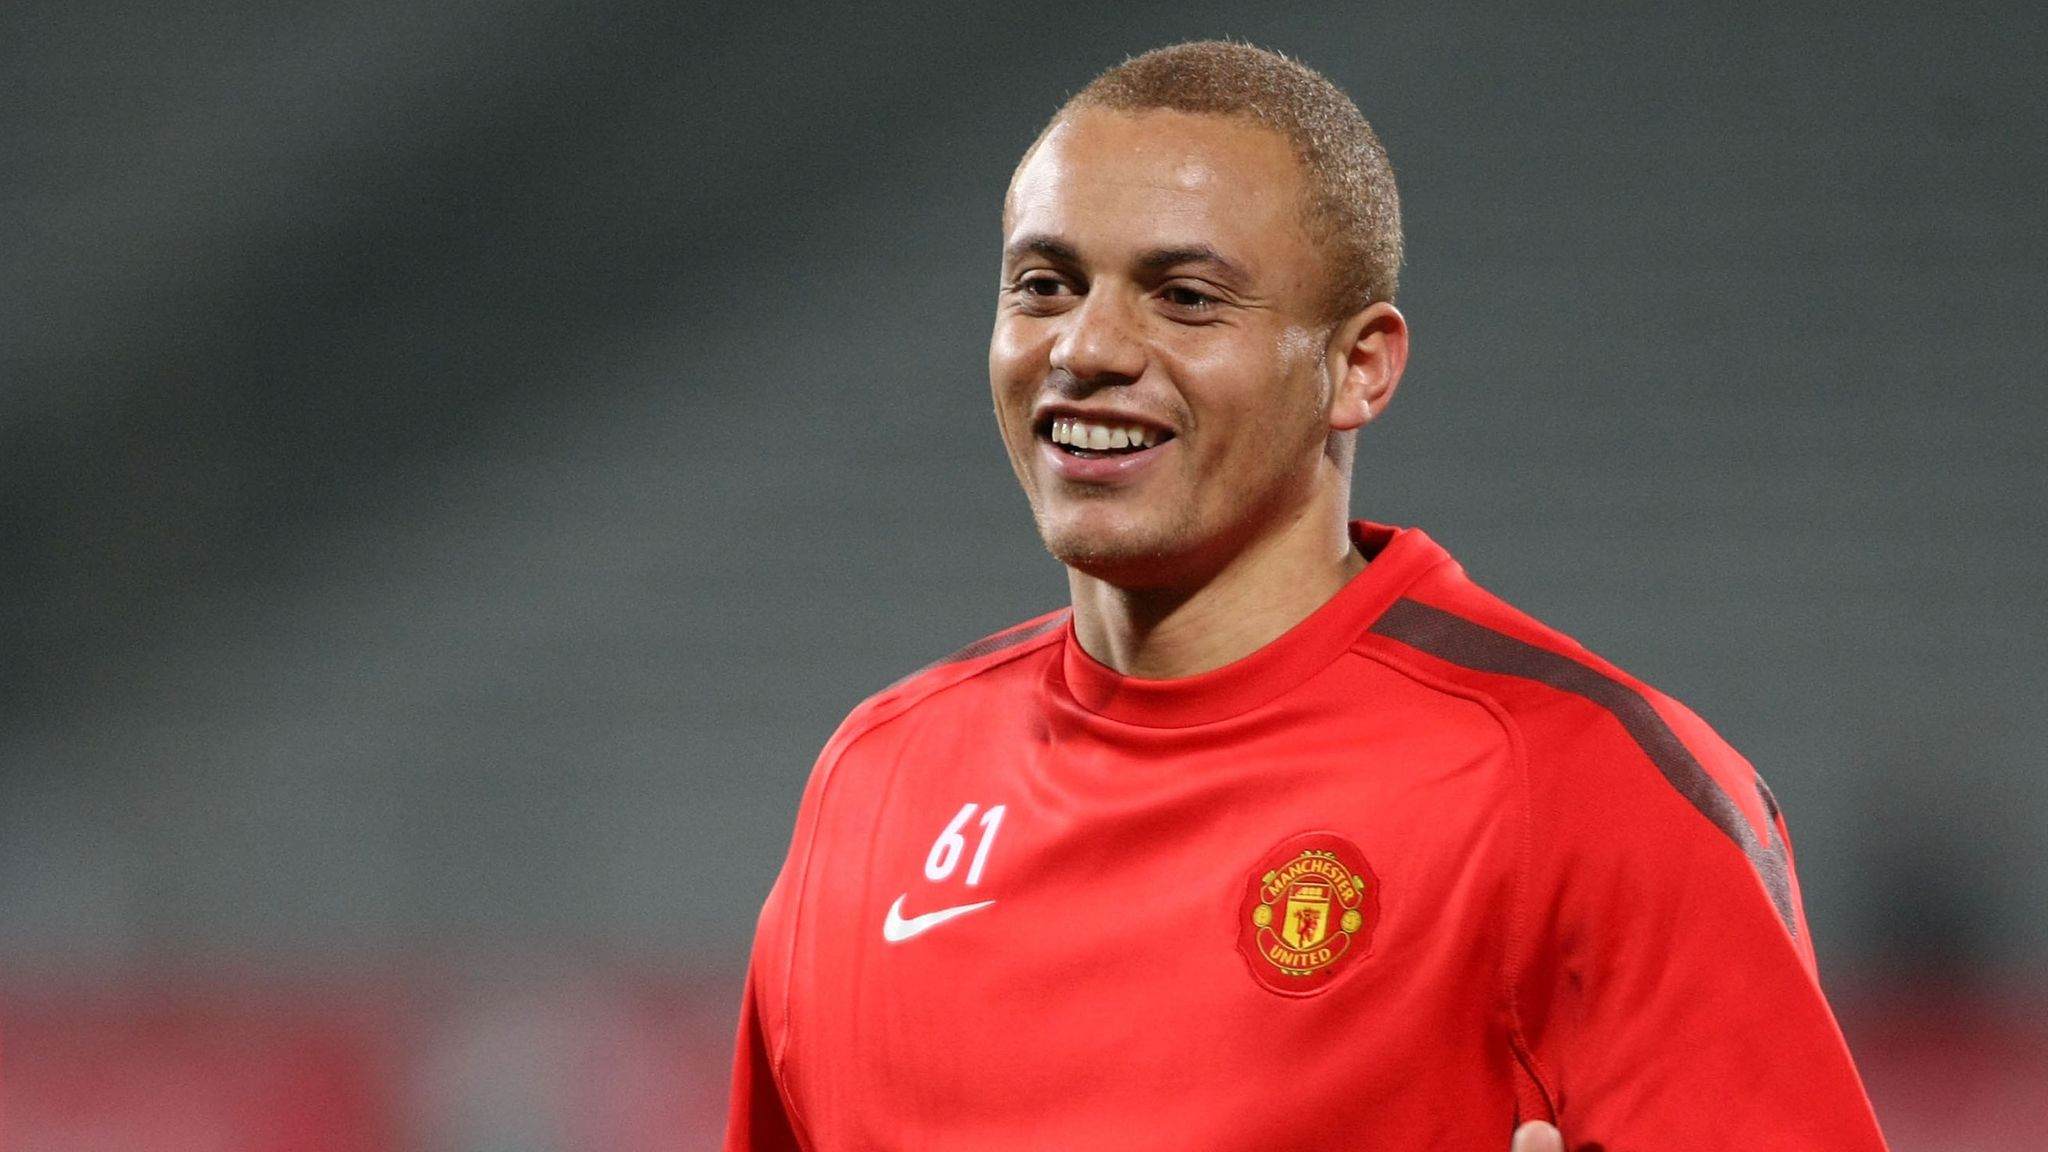 wes brown named 3 perfect targets for man utd - Bóng Đá